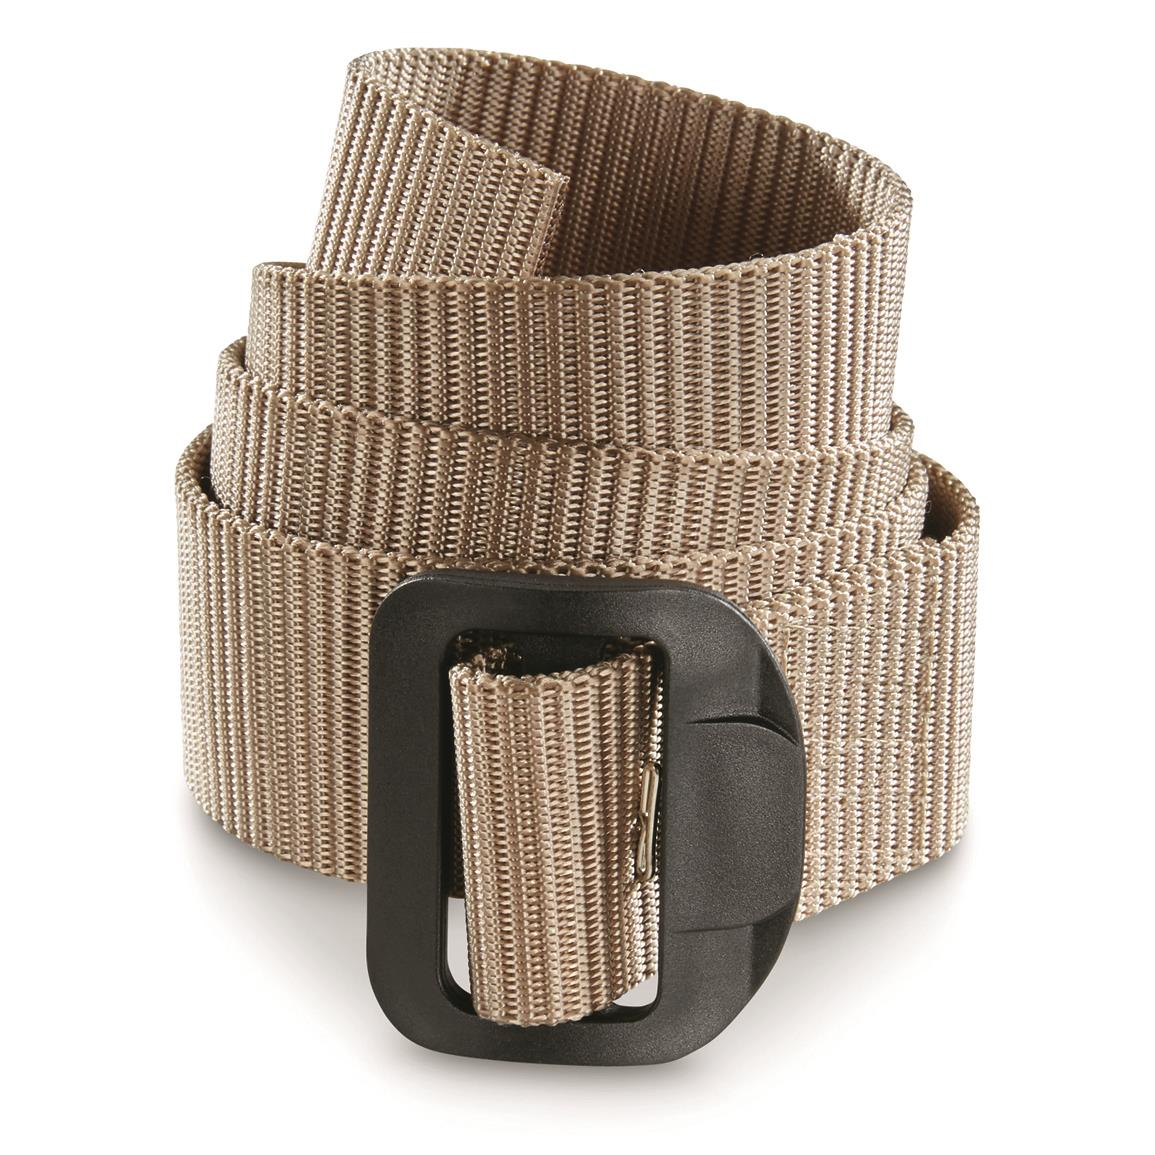 Propper Military Surplus Duty Belts, 2 Pack, New